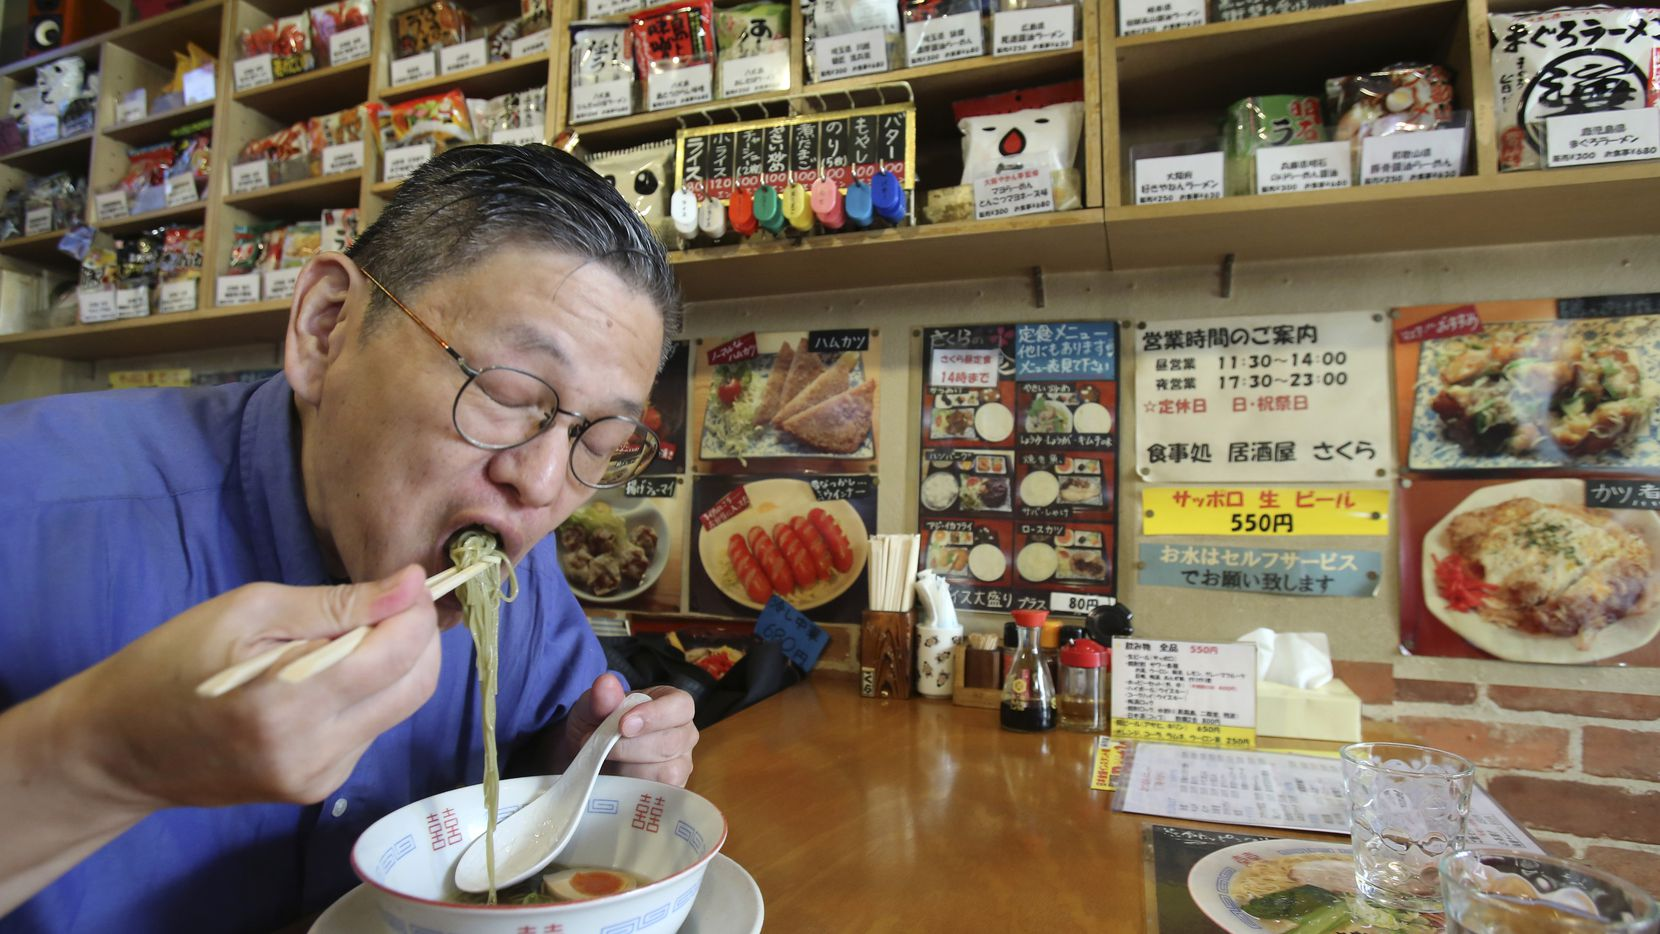 Masaya Sokusekisai Oyama, 55, slurps noodles at a Tokyo shop and restaurant specializing only in varieties of instant noodles.